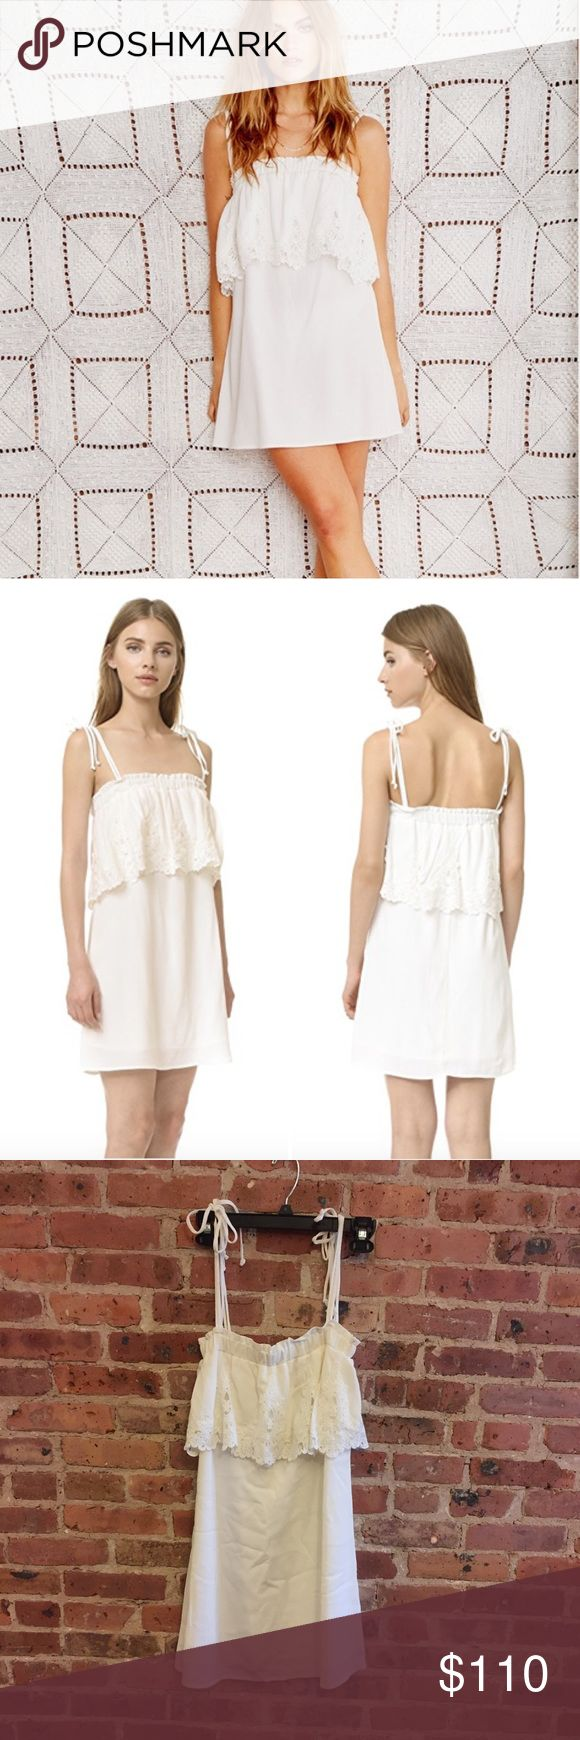 Stone Cold Fox Muriel Mini Lace Popover Dress 1 A lace-trimmed ruffle details the covered elastic top hem of this relaxed Stone Cold Fox dress. Tie shoulder straps. Lined.   Fabric: Crepe. 100% rayon.  Size 1. Great condition - no stains or holes. Stone Cold Fox Dresses Mini